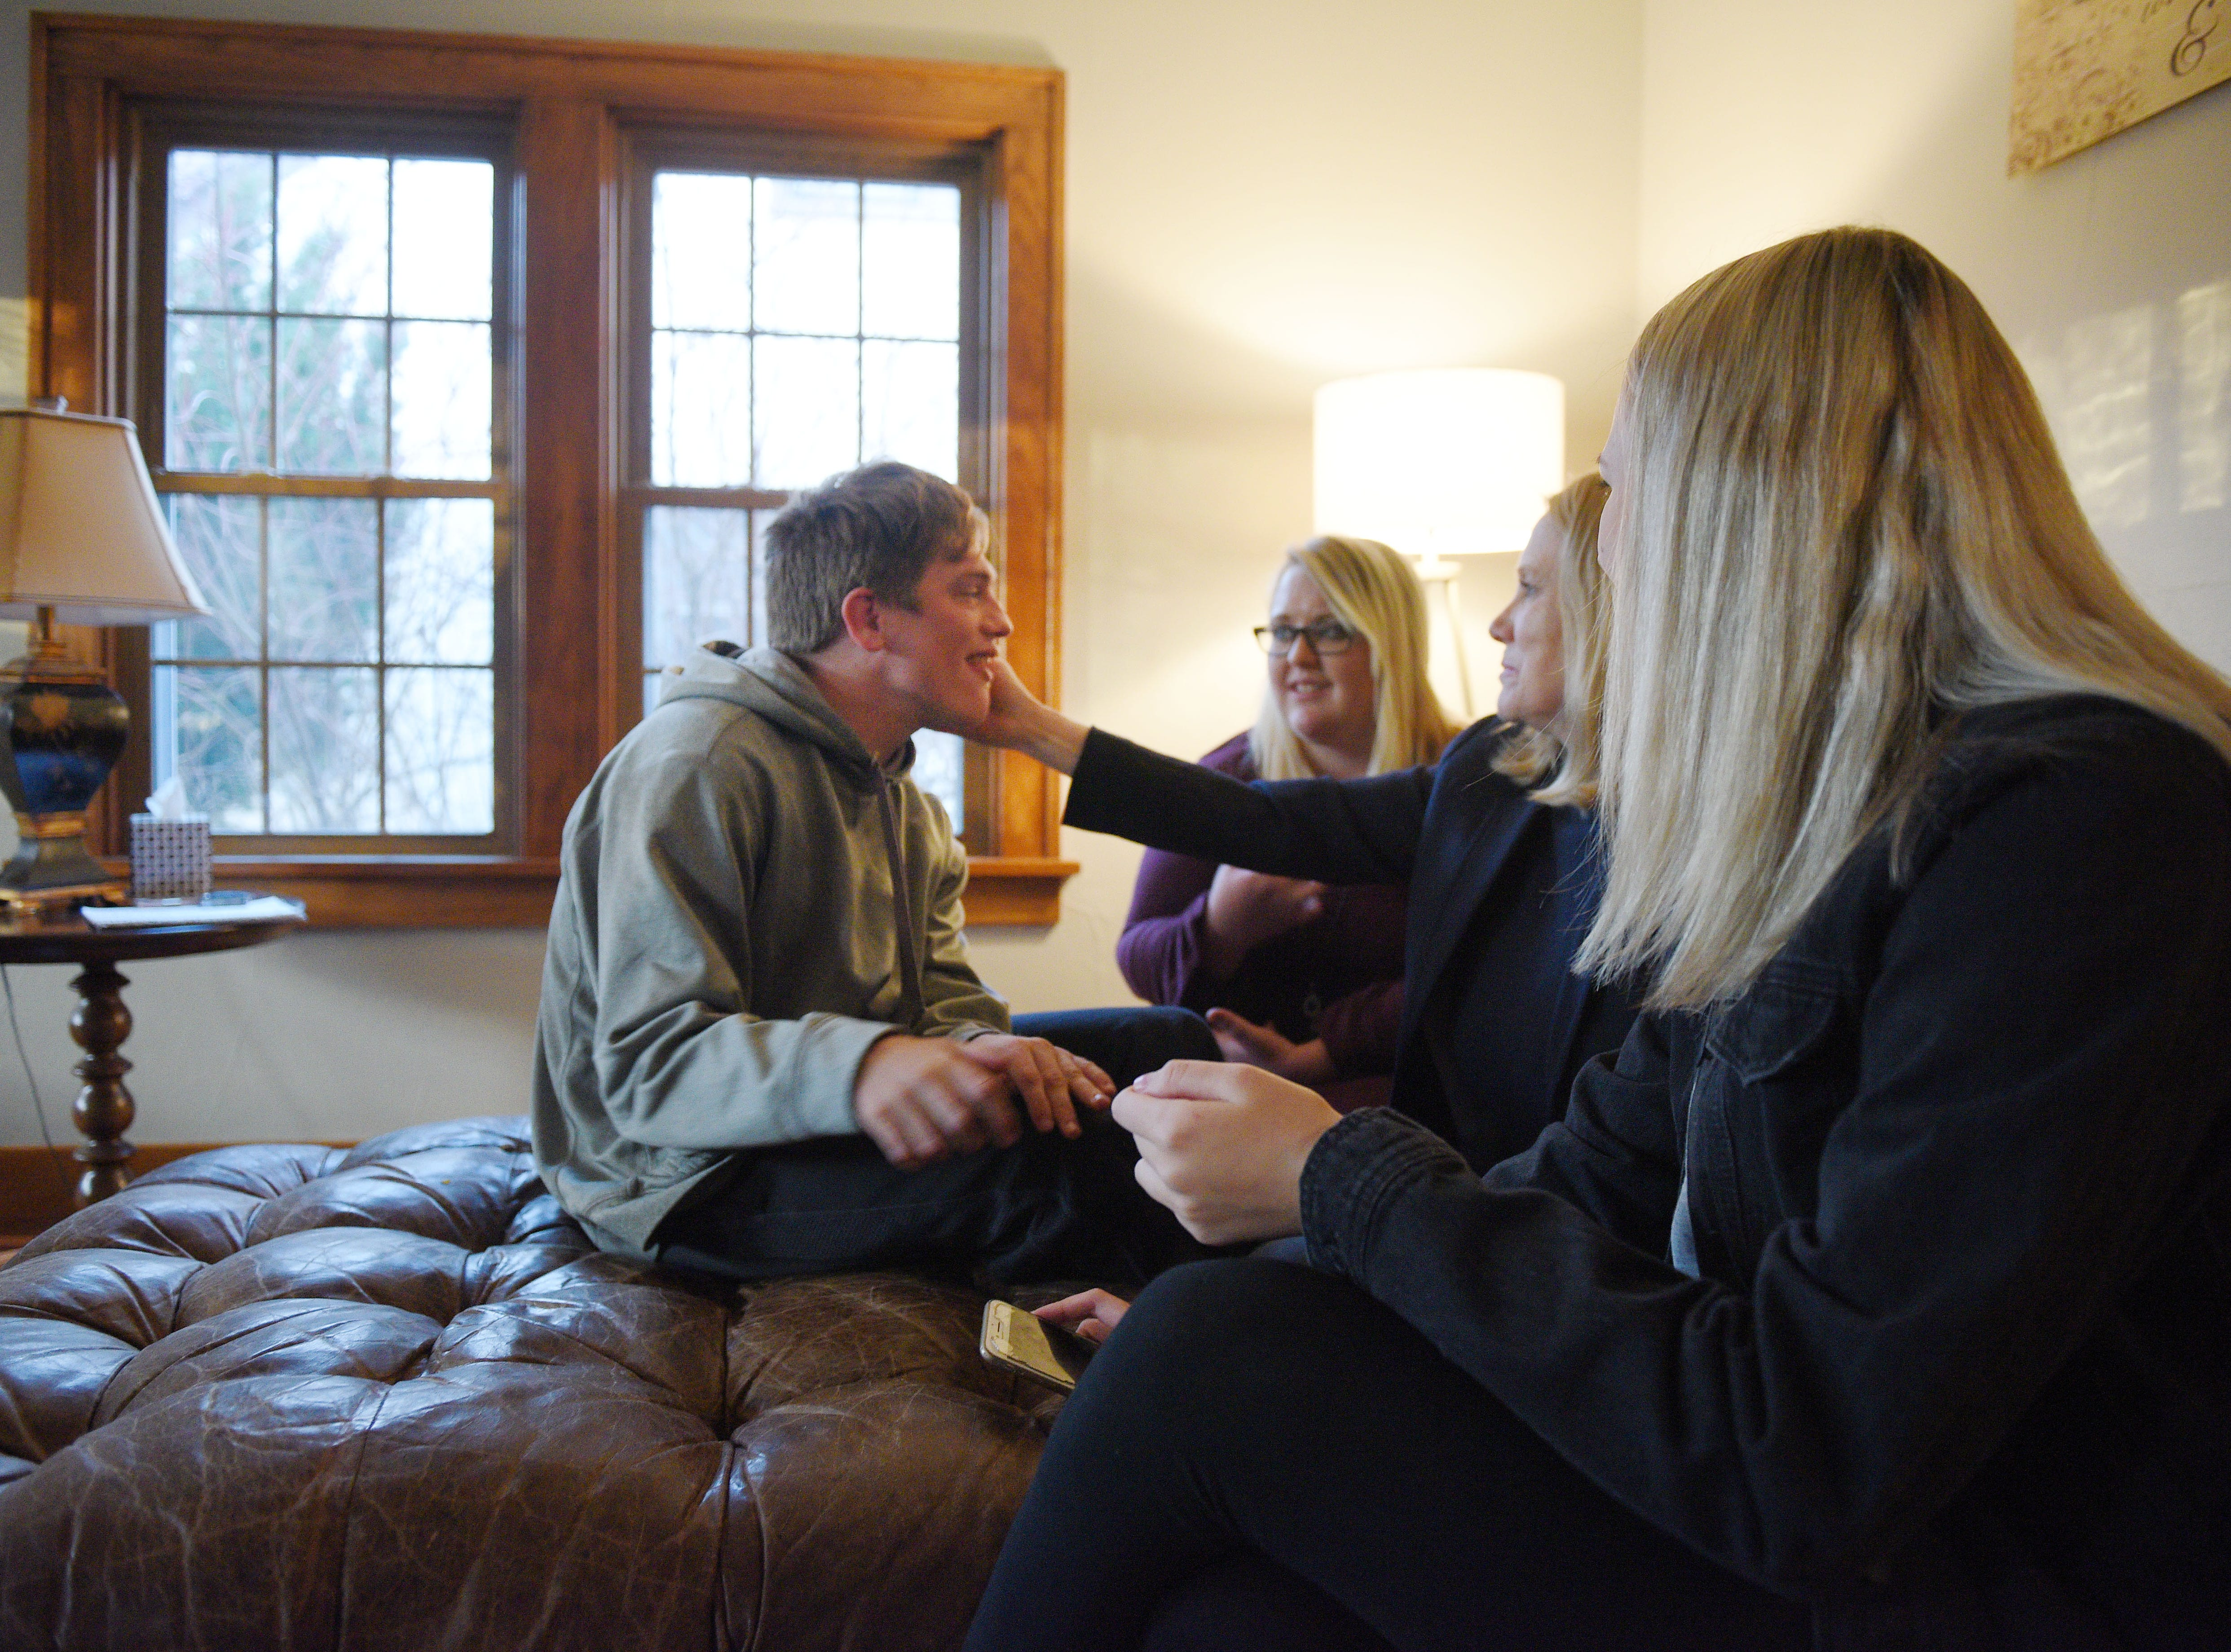 Ben Graff has his family over at his new house Wednesday, Nov. 7, in Sioux Falls. He lives with Shared Living Provider Kayla Harris and roommate Jenna Askelson.